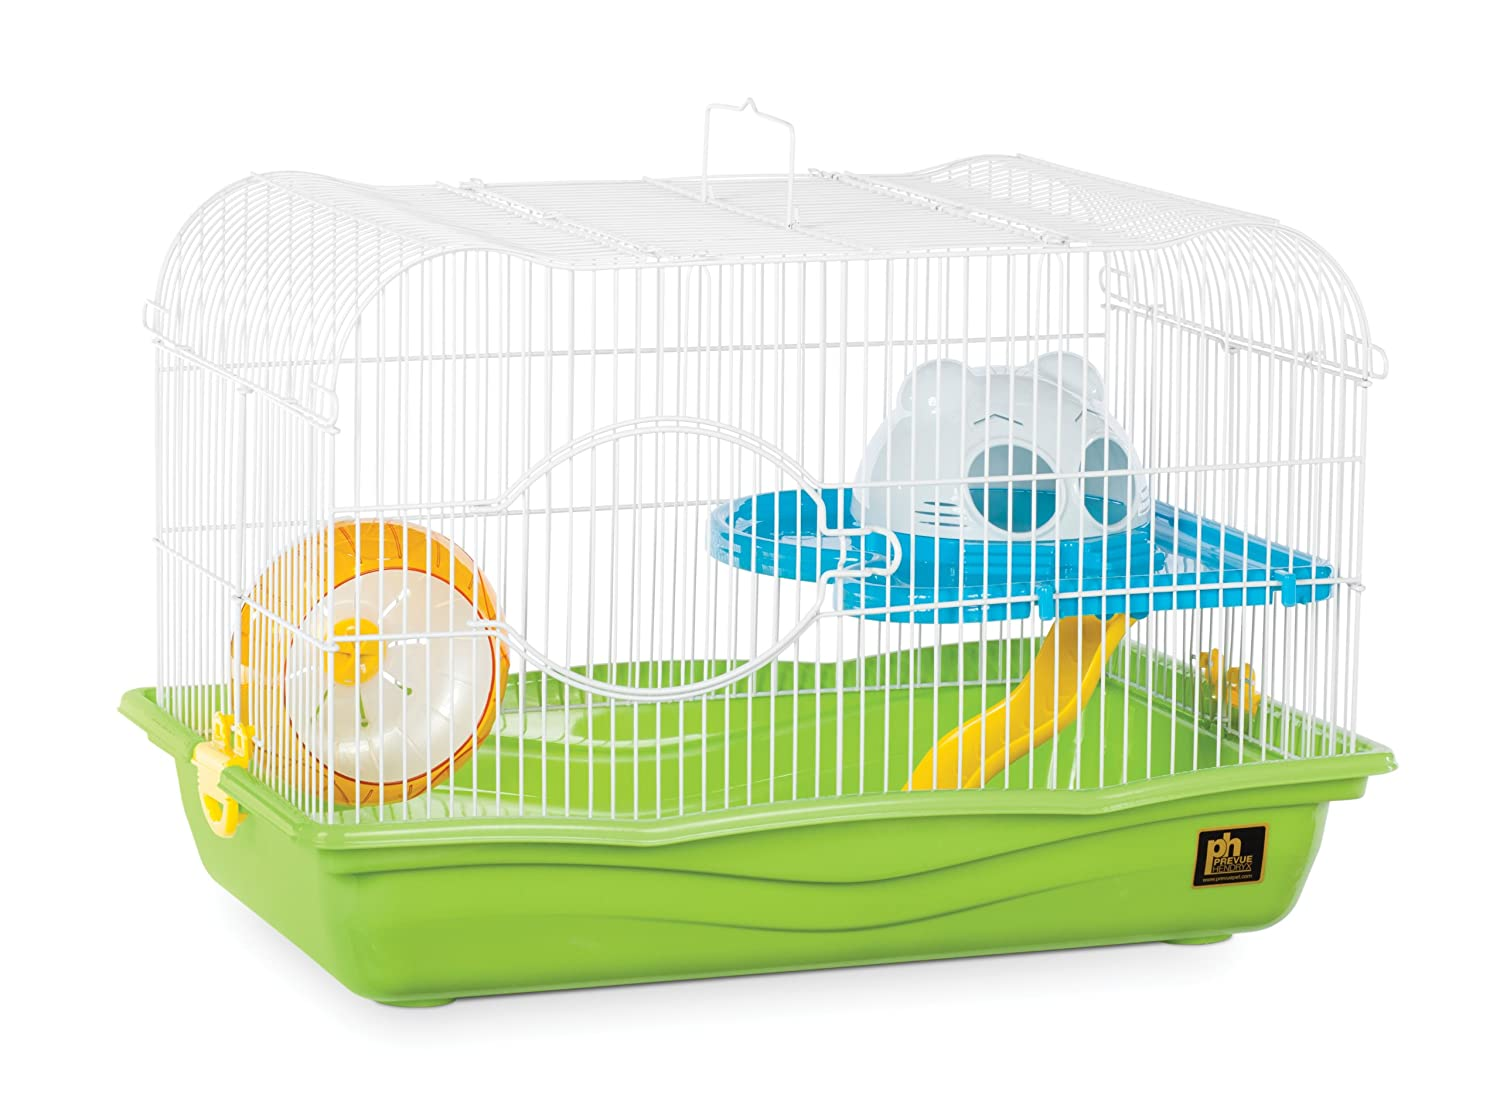 Green LG Green LG Prevue Pet Products SP2005GR Large Hamster Haven Green